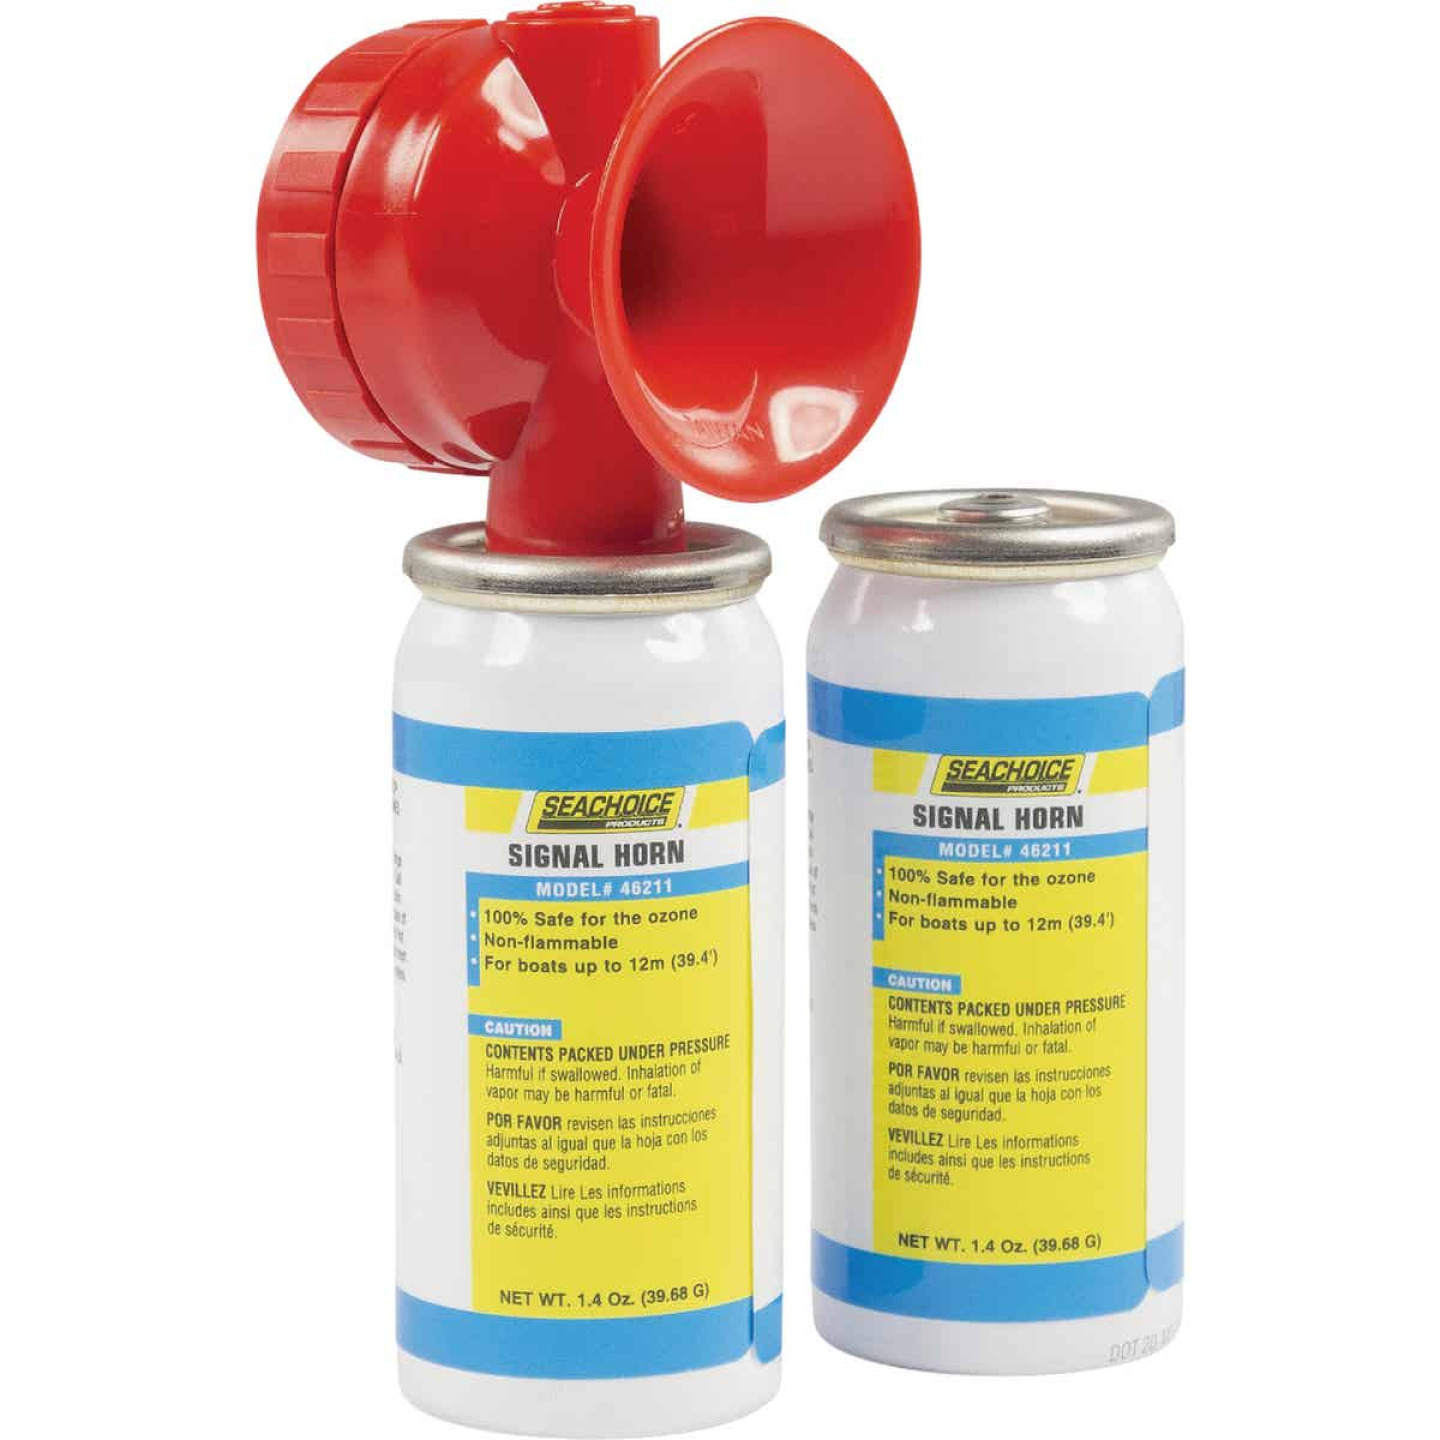 Seachoice 115 dB Mini Air Horn Kit (2-Pack) Image 1